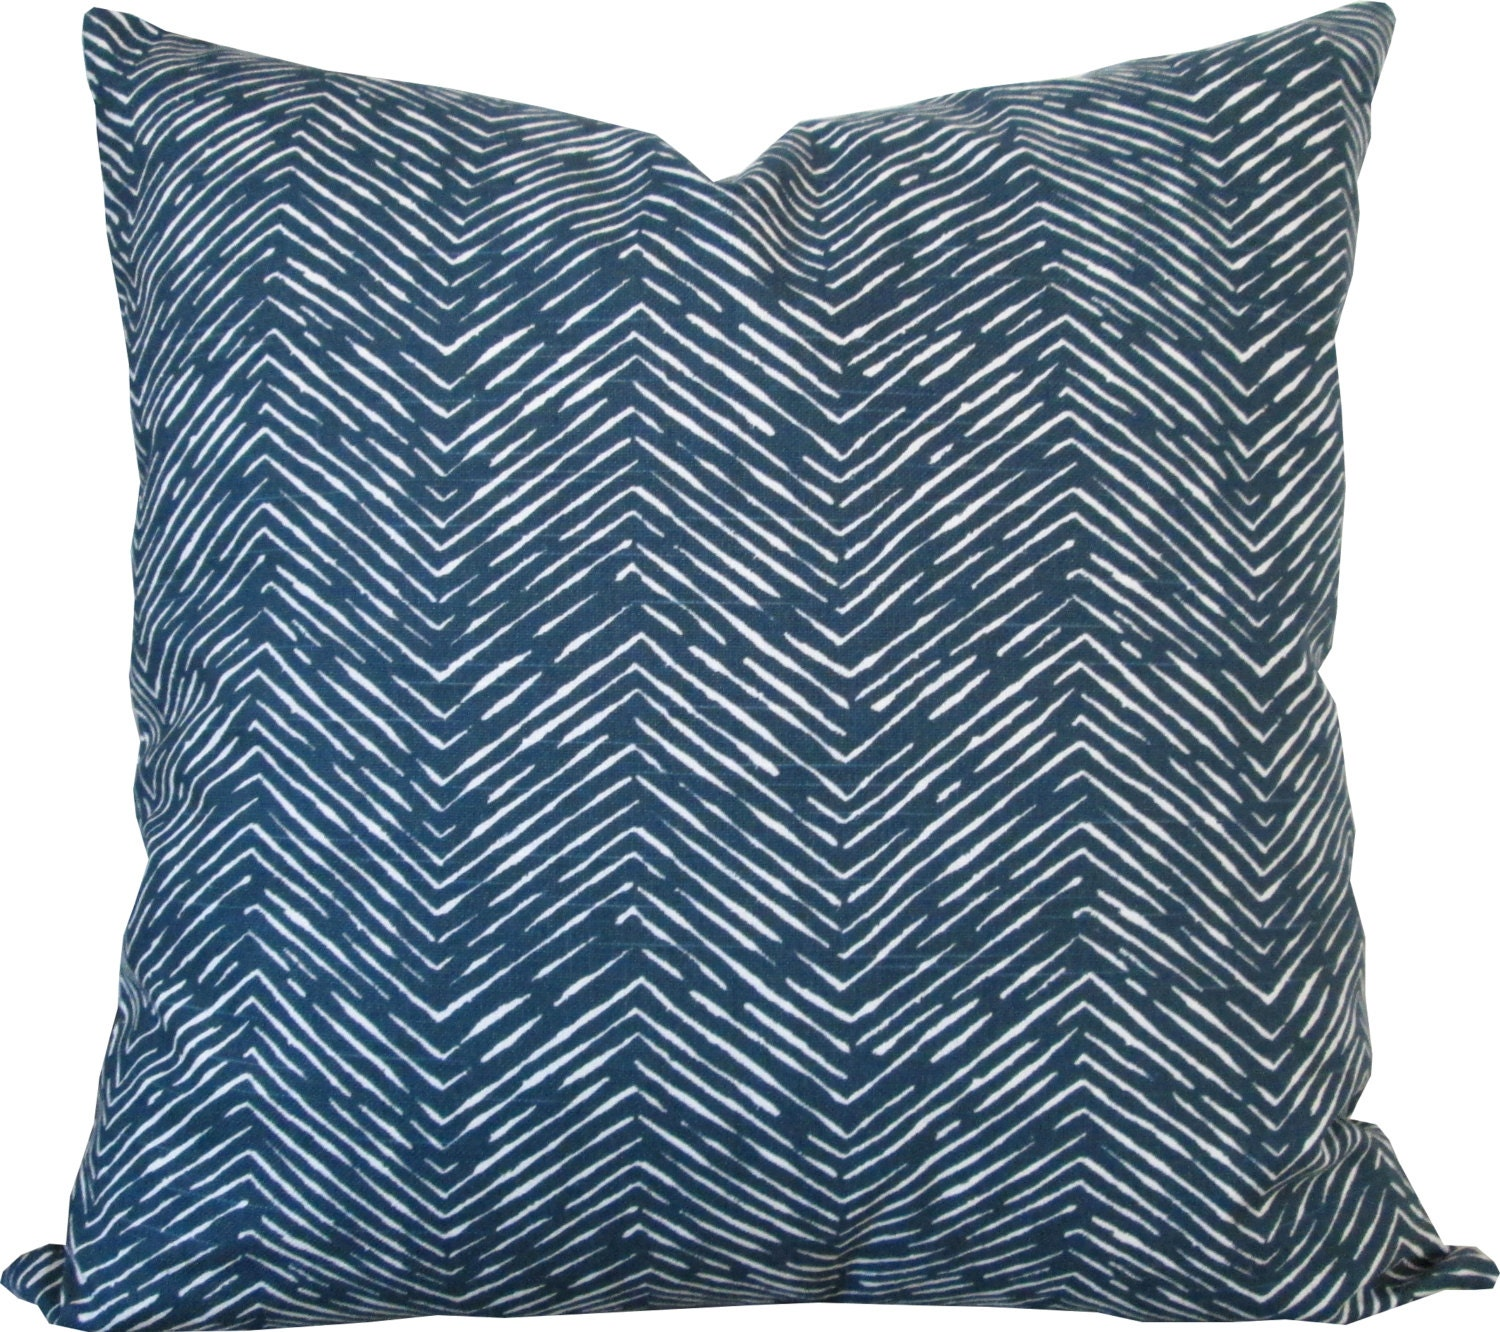 Designer Decorative Pillow Cover-Navy and White Zigzag-Accent